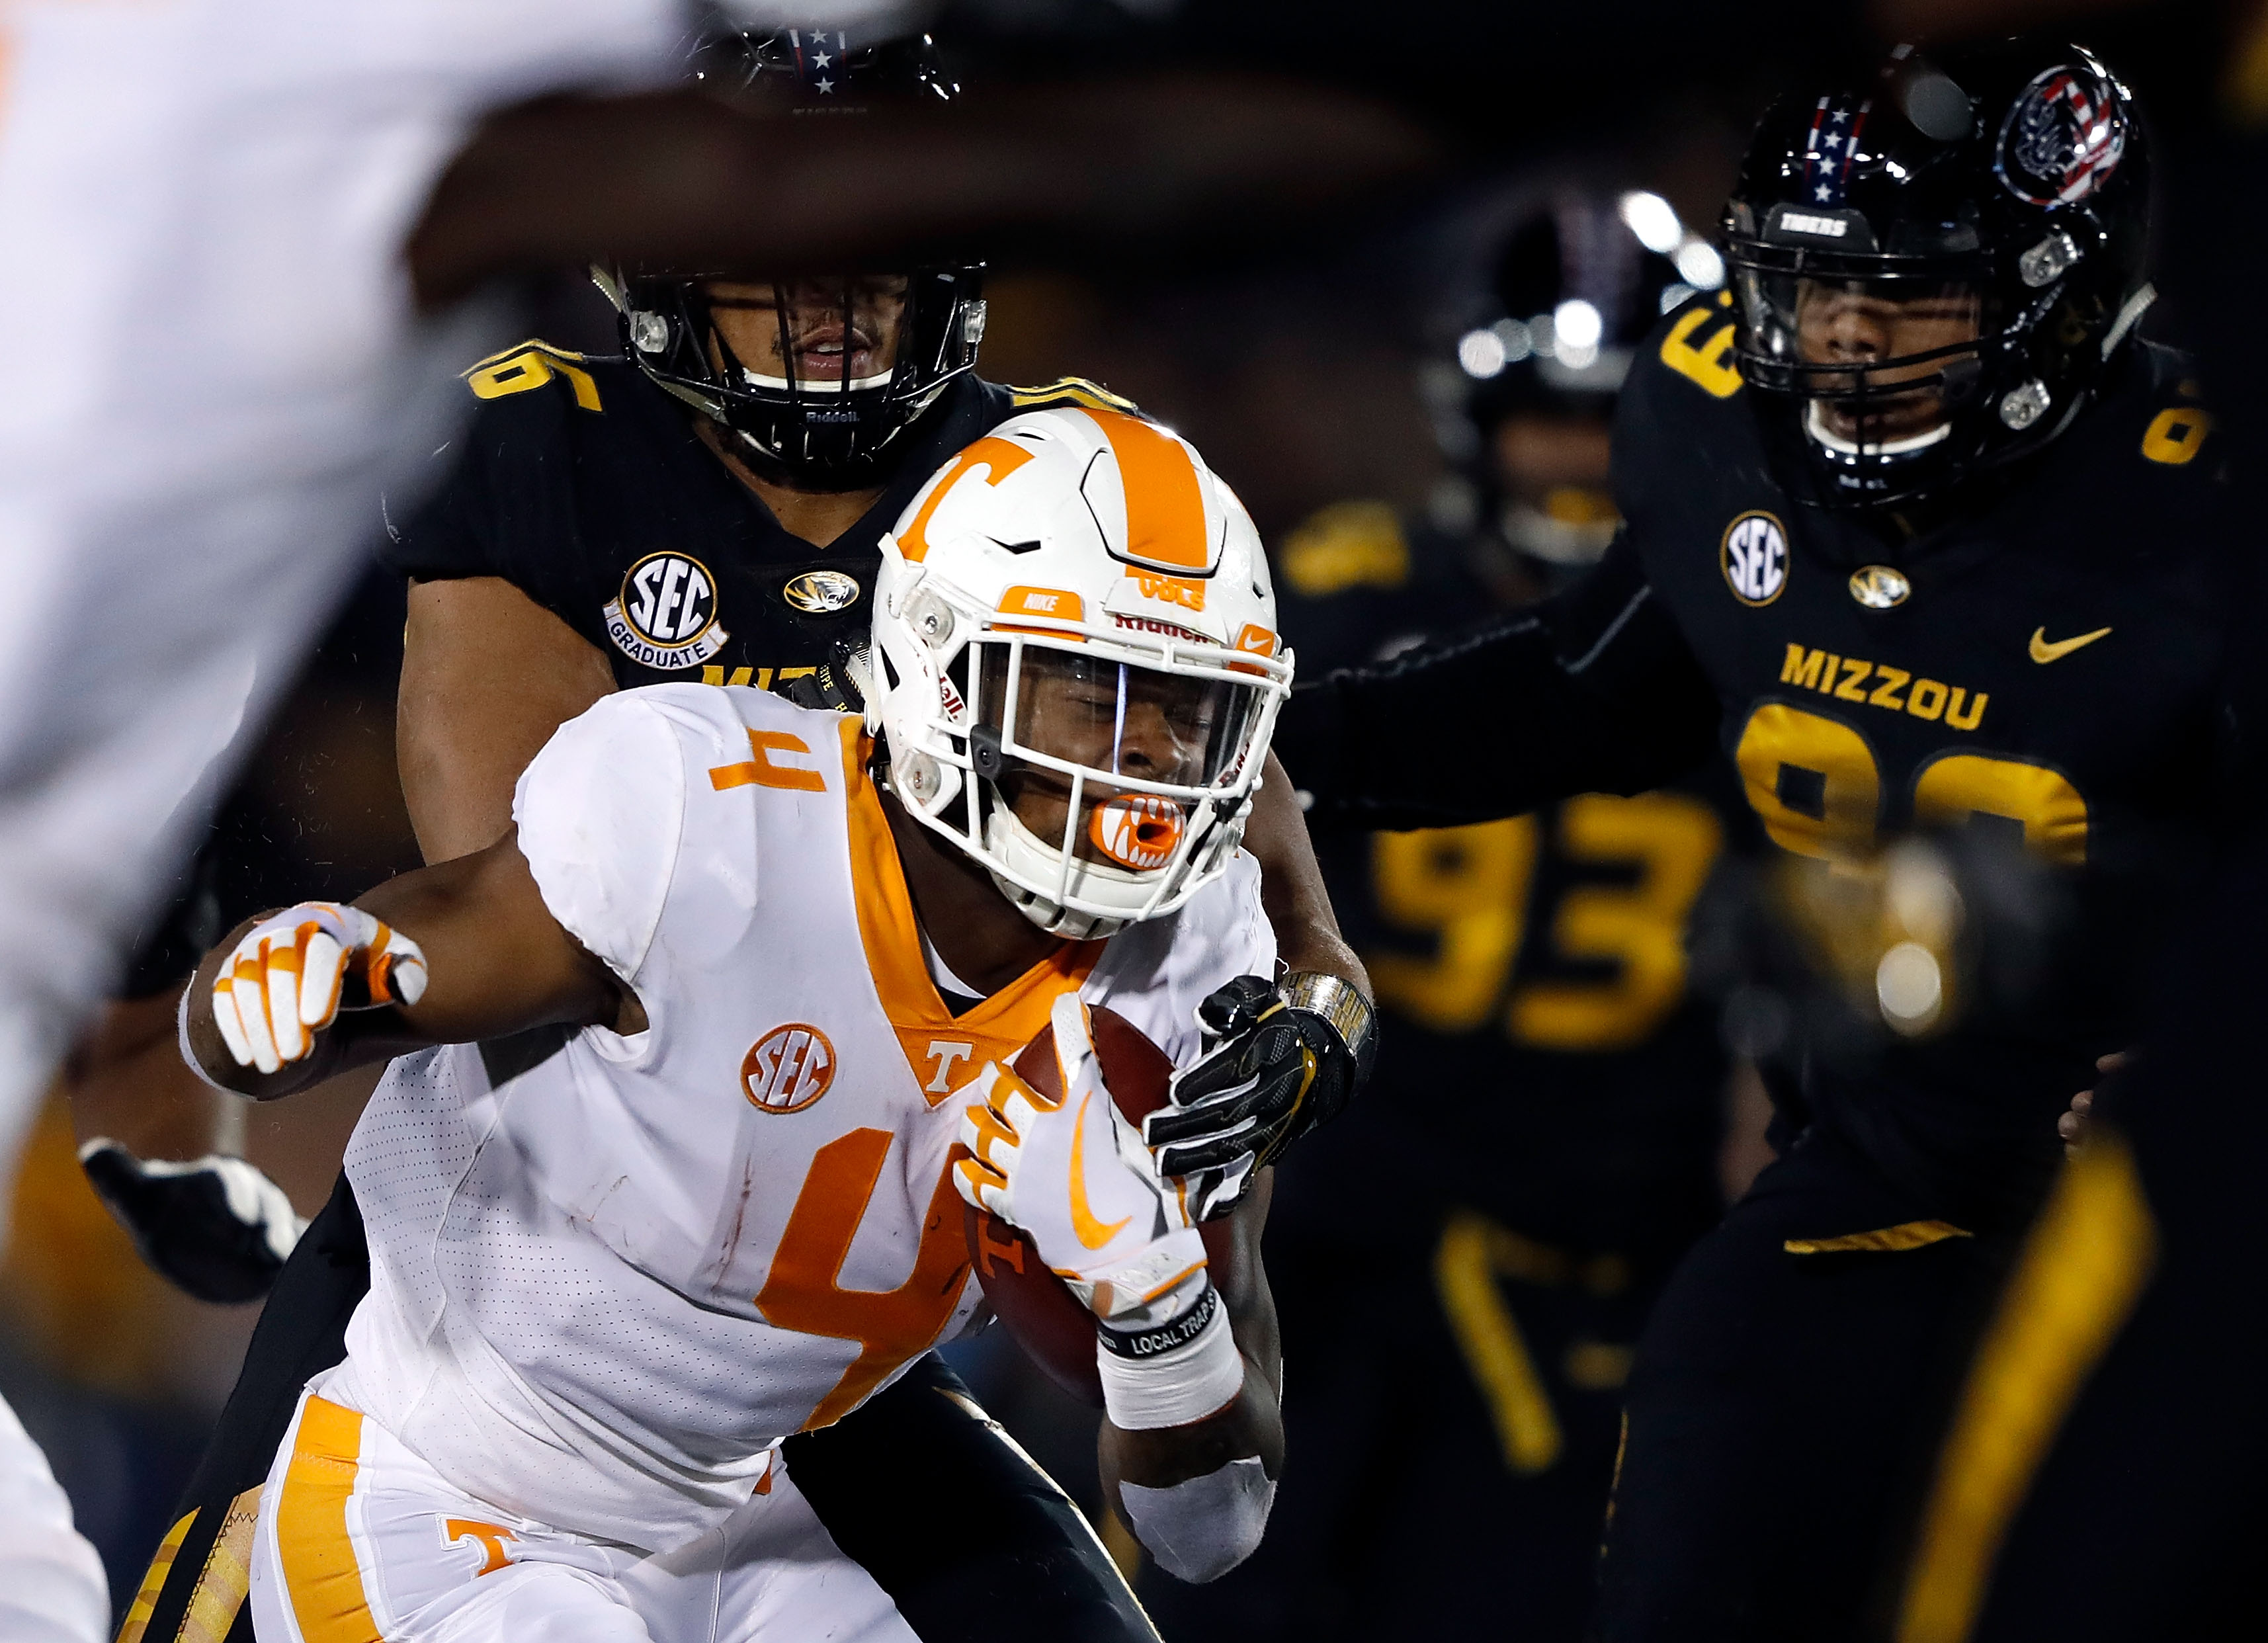 Tennessee RB John Kelly carries the ball against the Missouri Tigers, November 11, 2017.